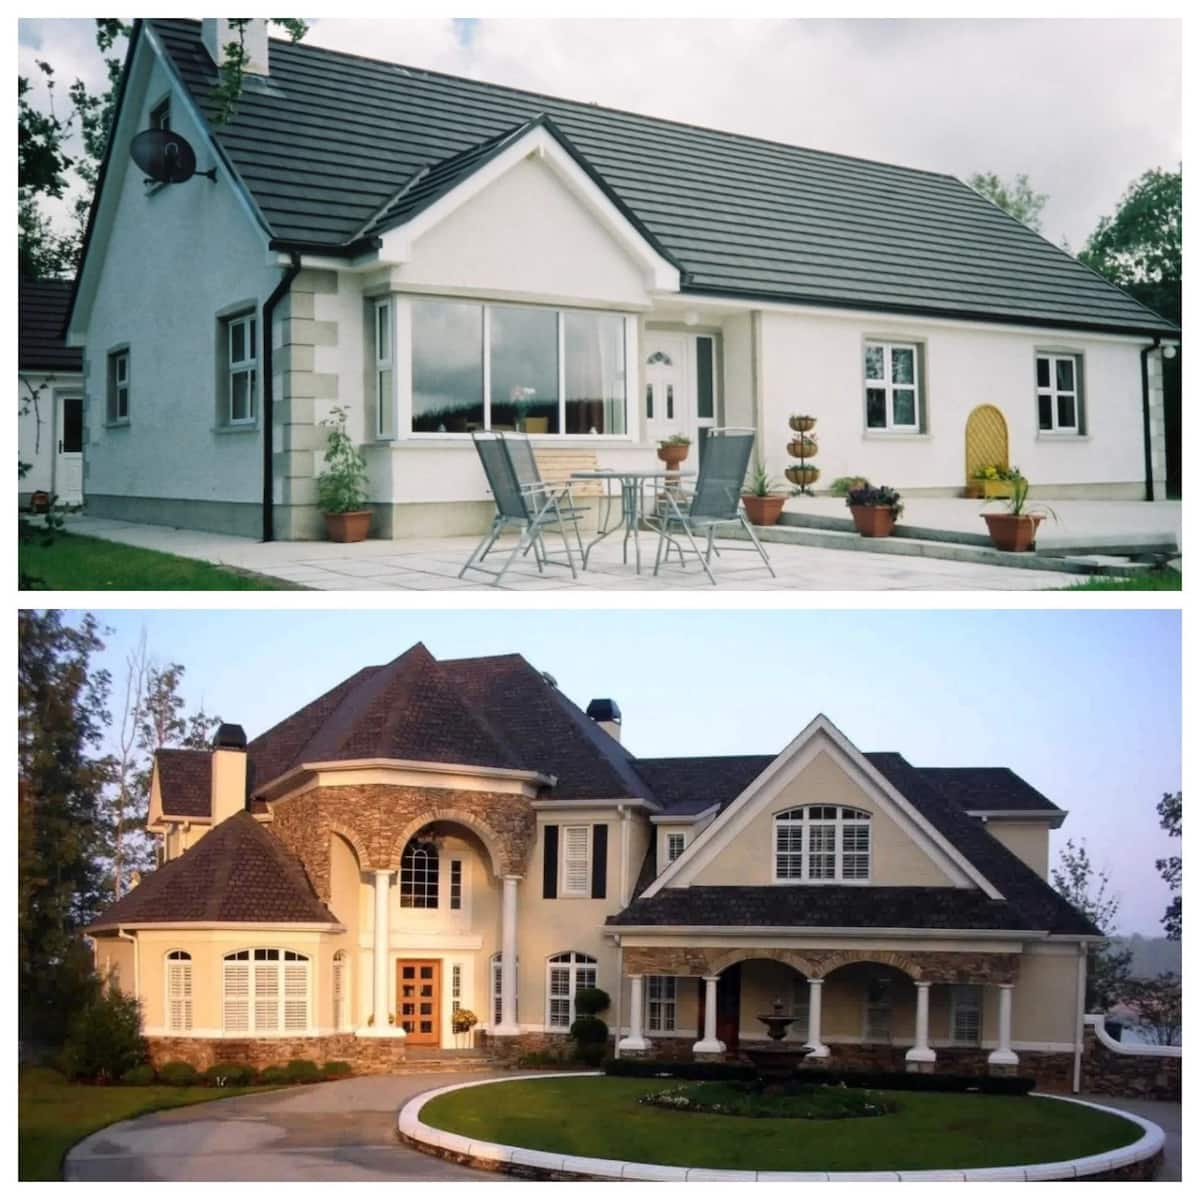 5 beautiful house designs in nigeria ▷ legit ng